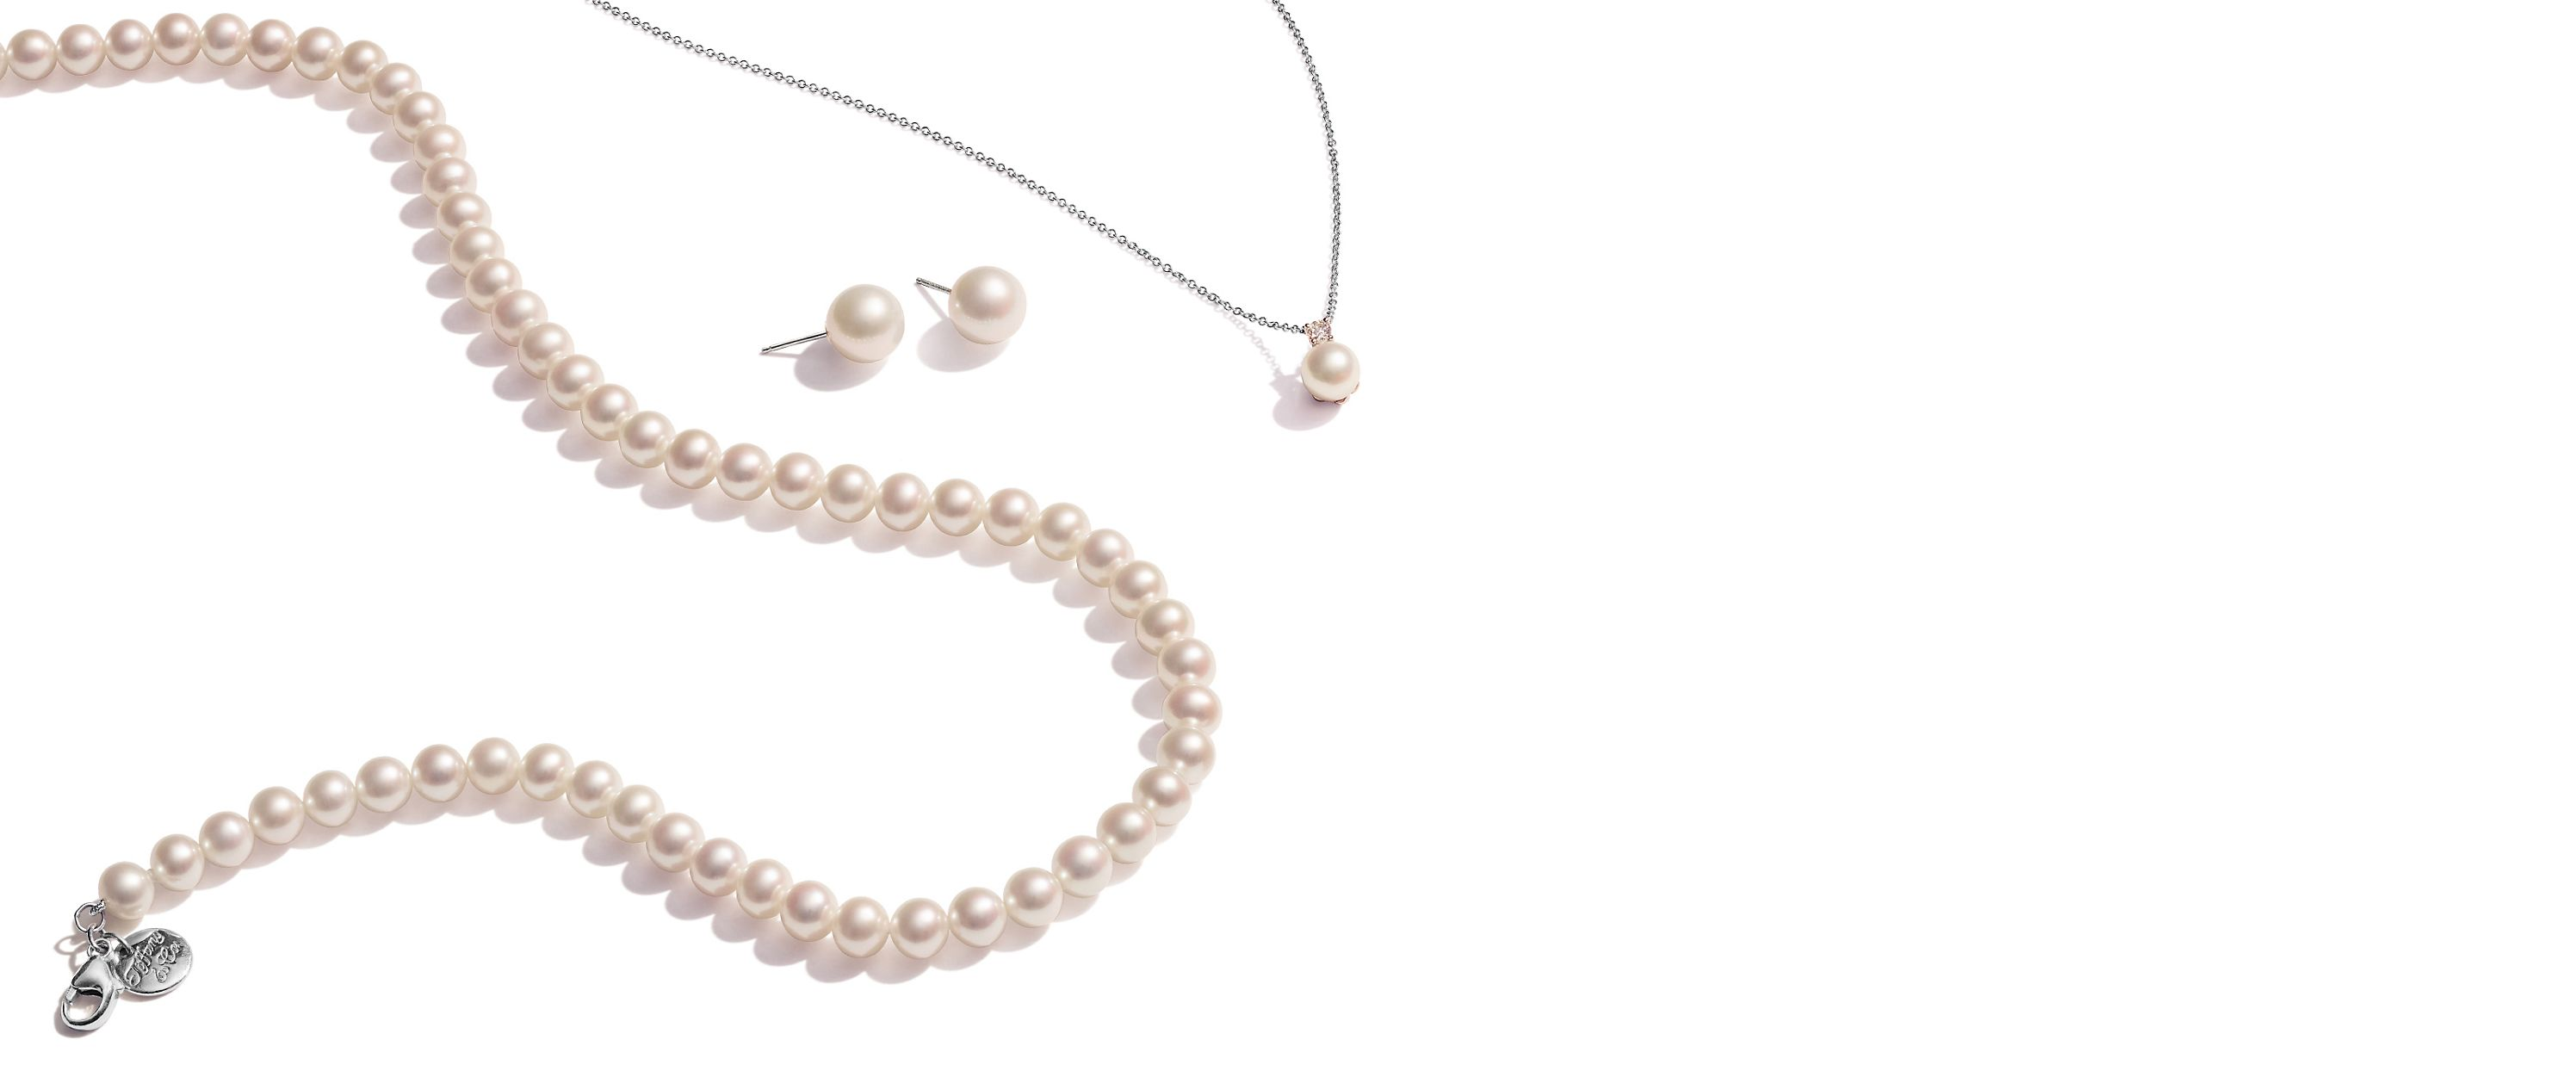 Browse Tiffany & Co. Pearl Jewelry